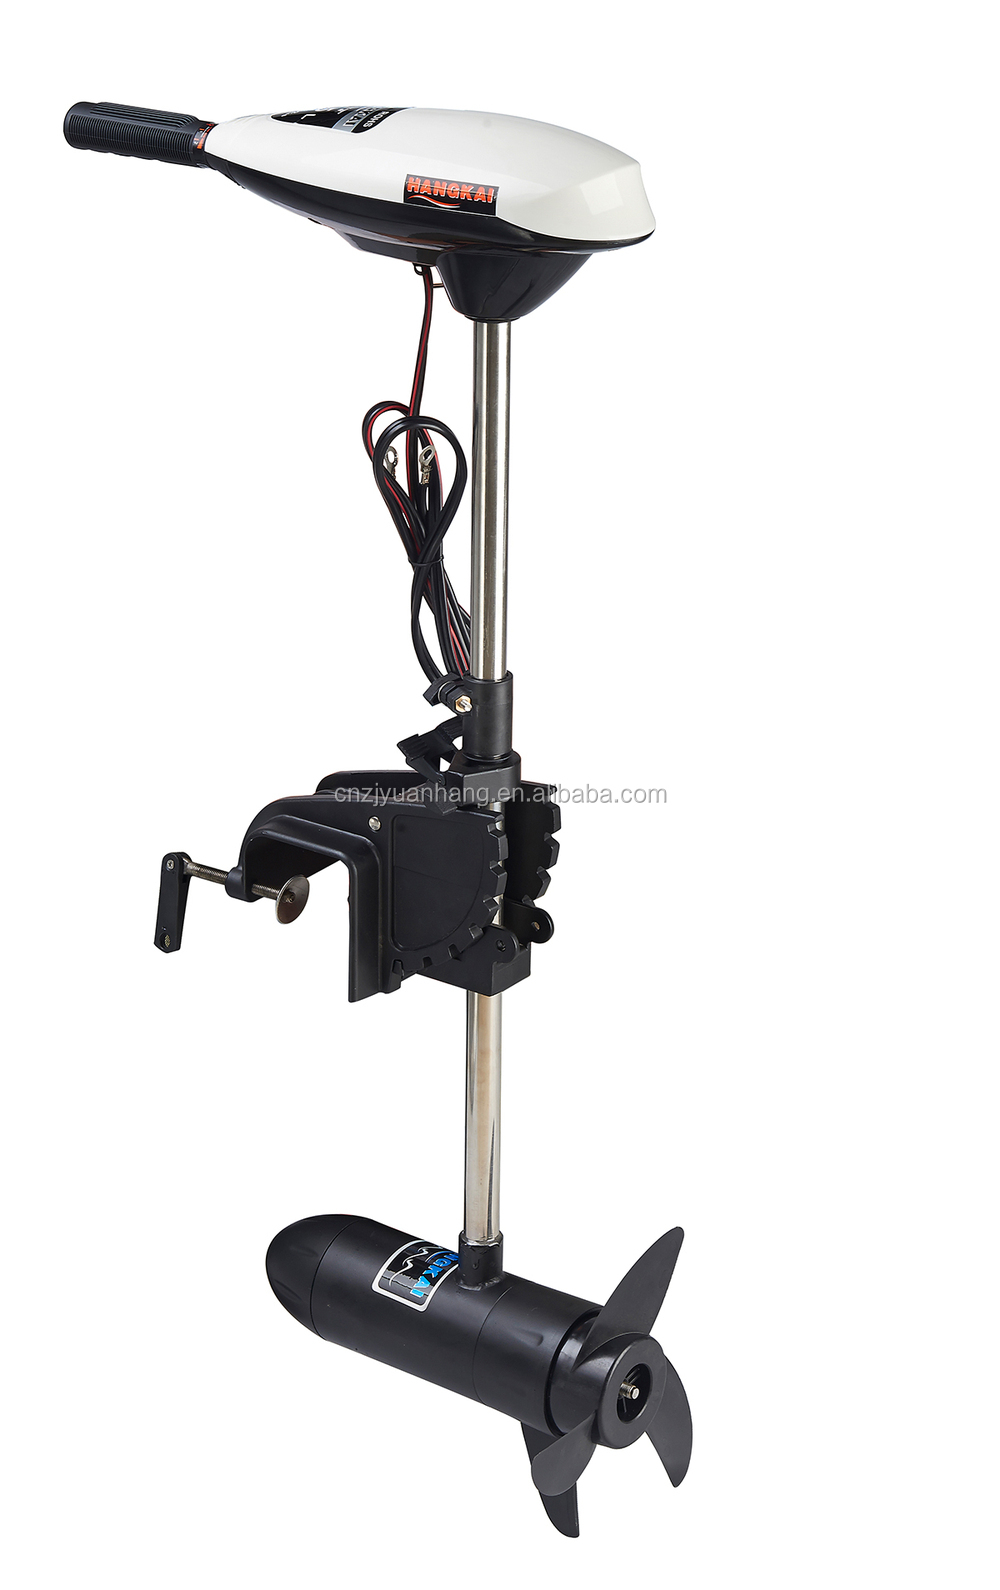 Durable 55lbs thrust electric trolling motor for for Kayak electric trolling motor